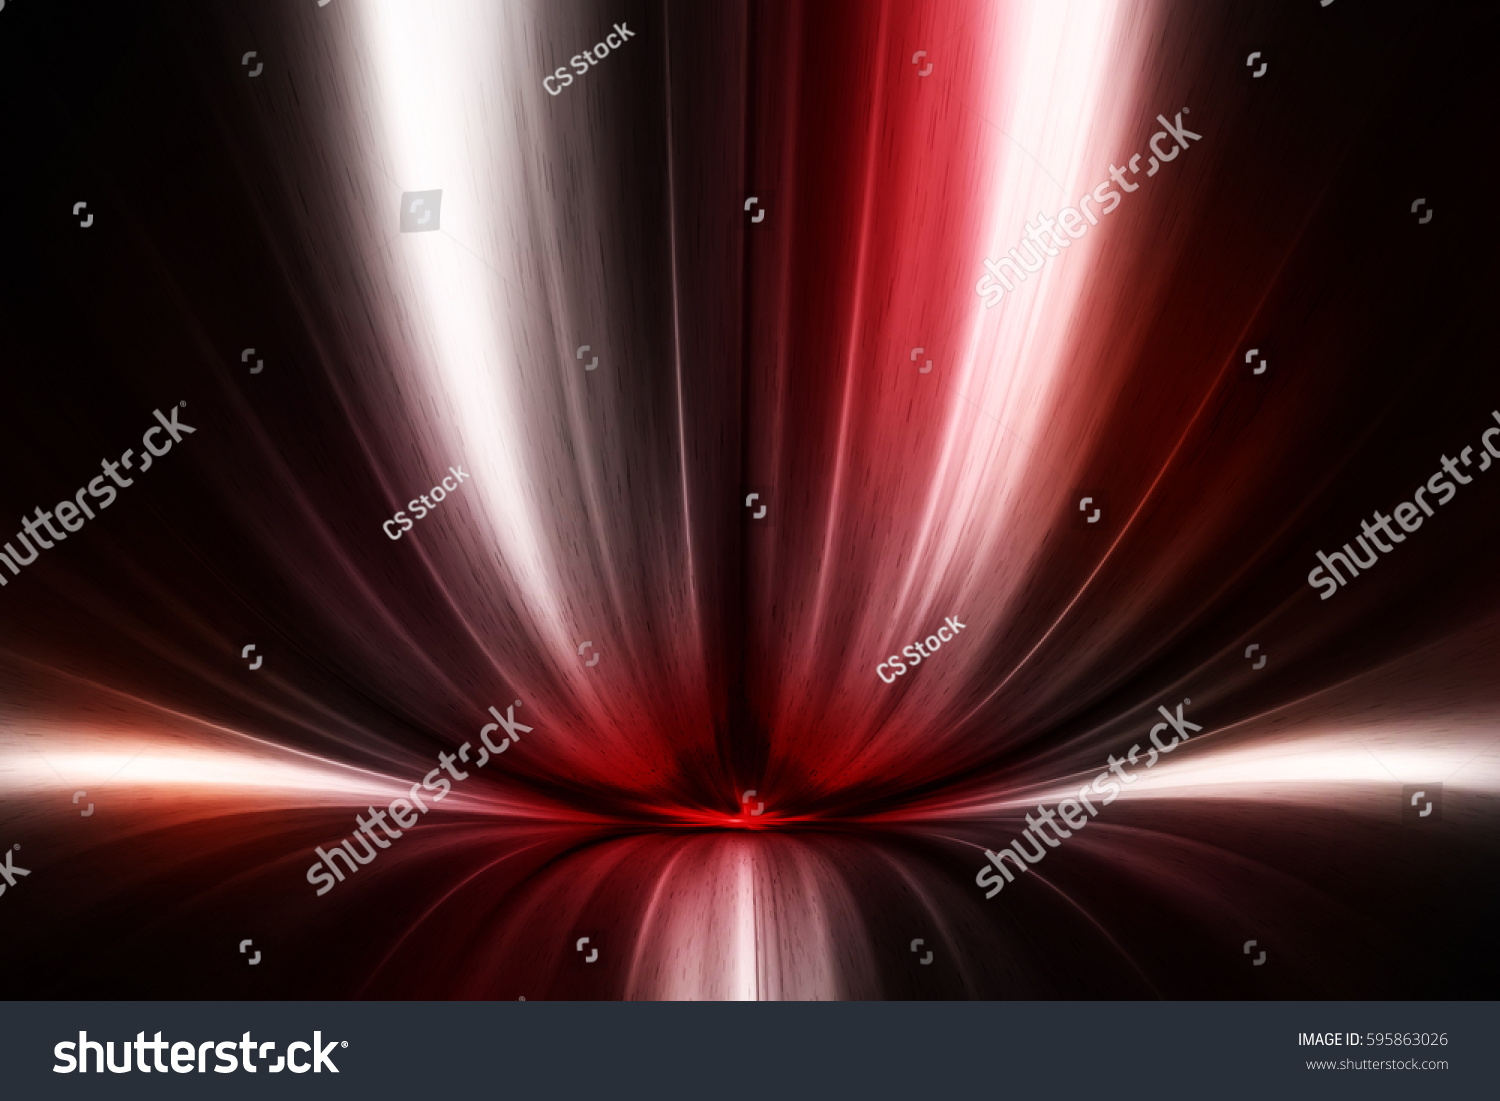 abstract colourful background webdesign blurredwave wallpaper stock